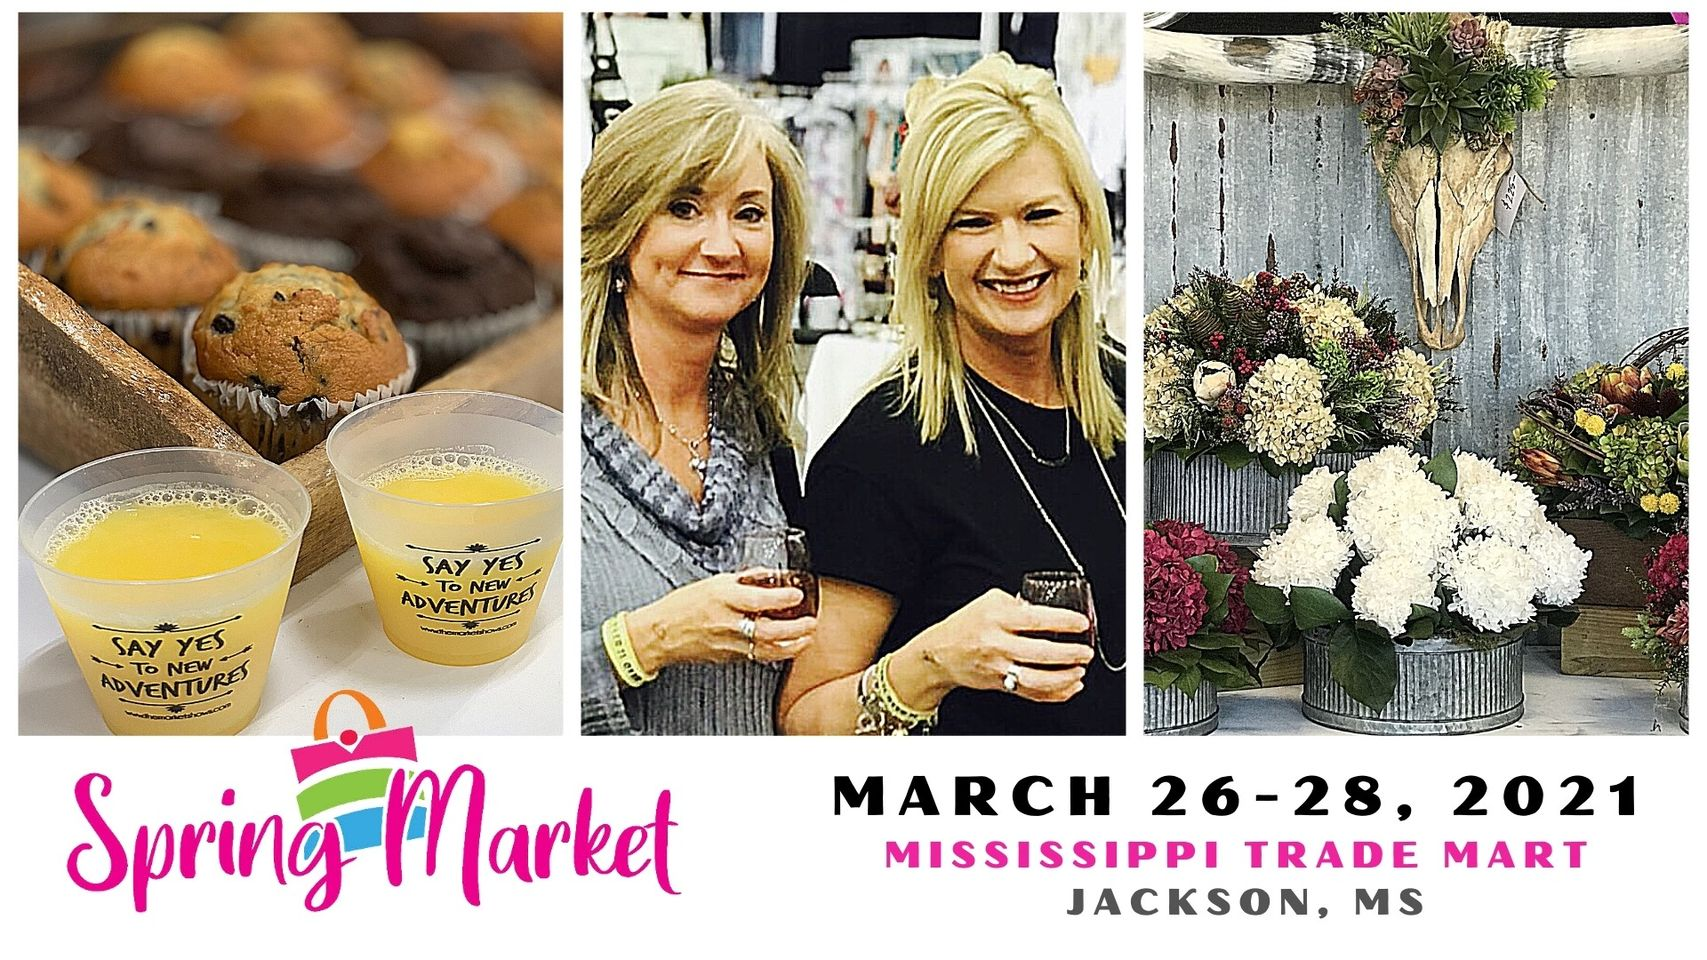 Muffins & Mimosas of Jackson | The Market Shows